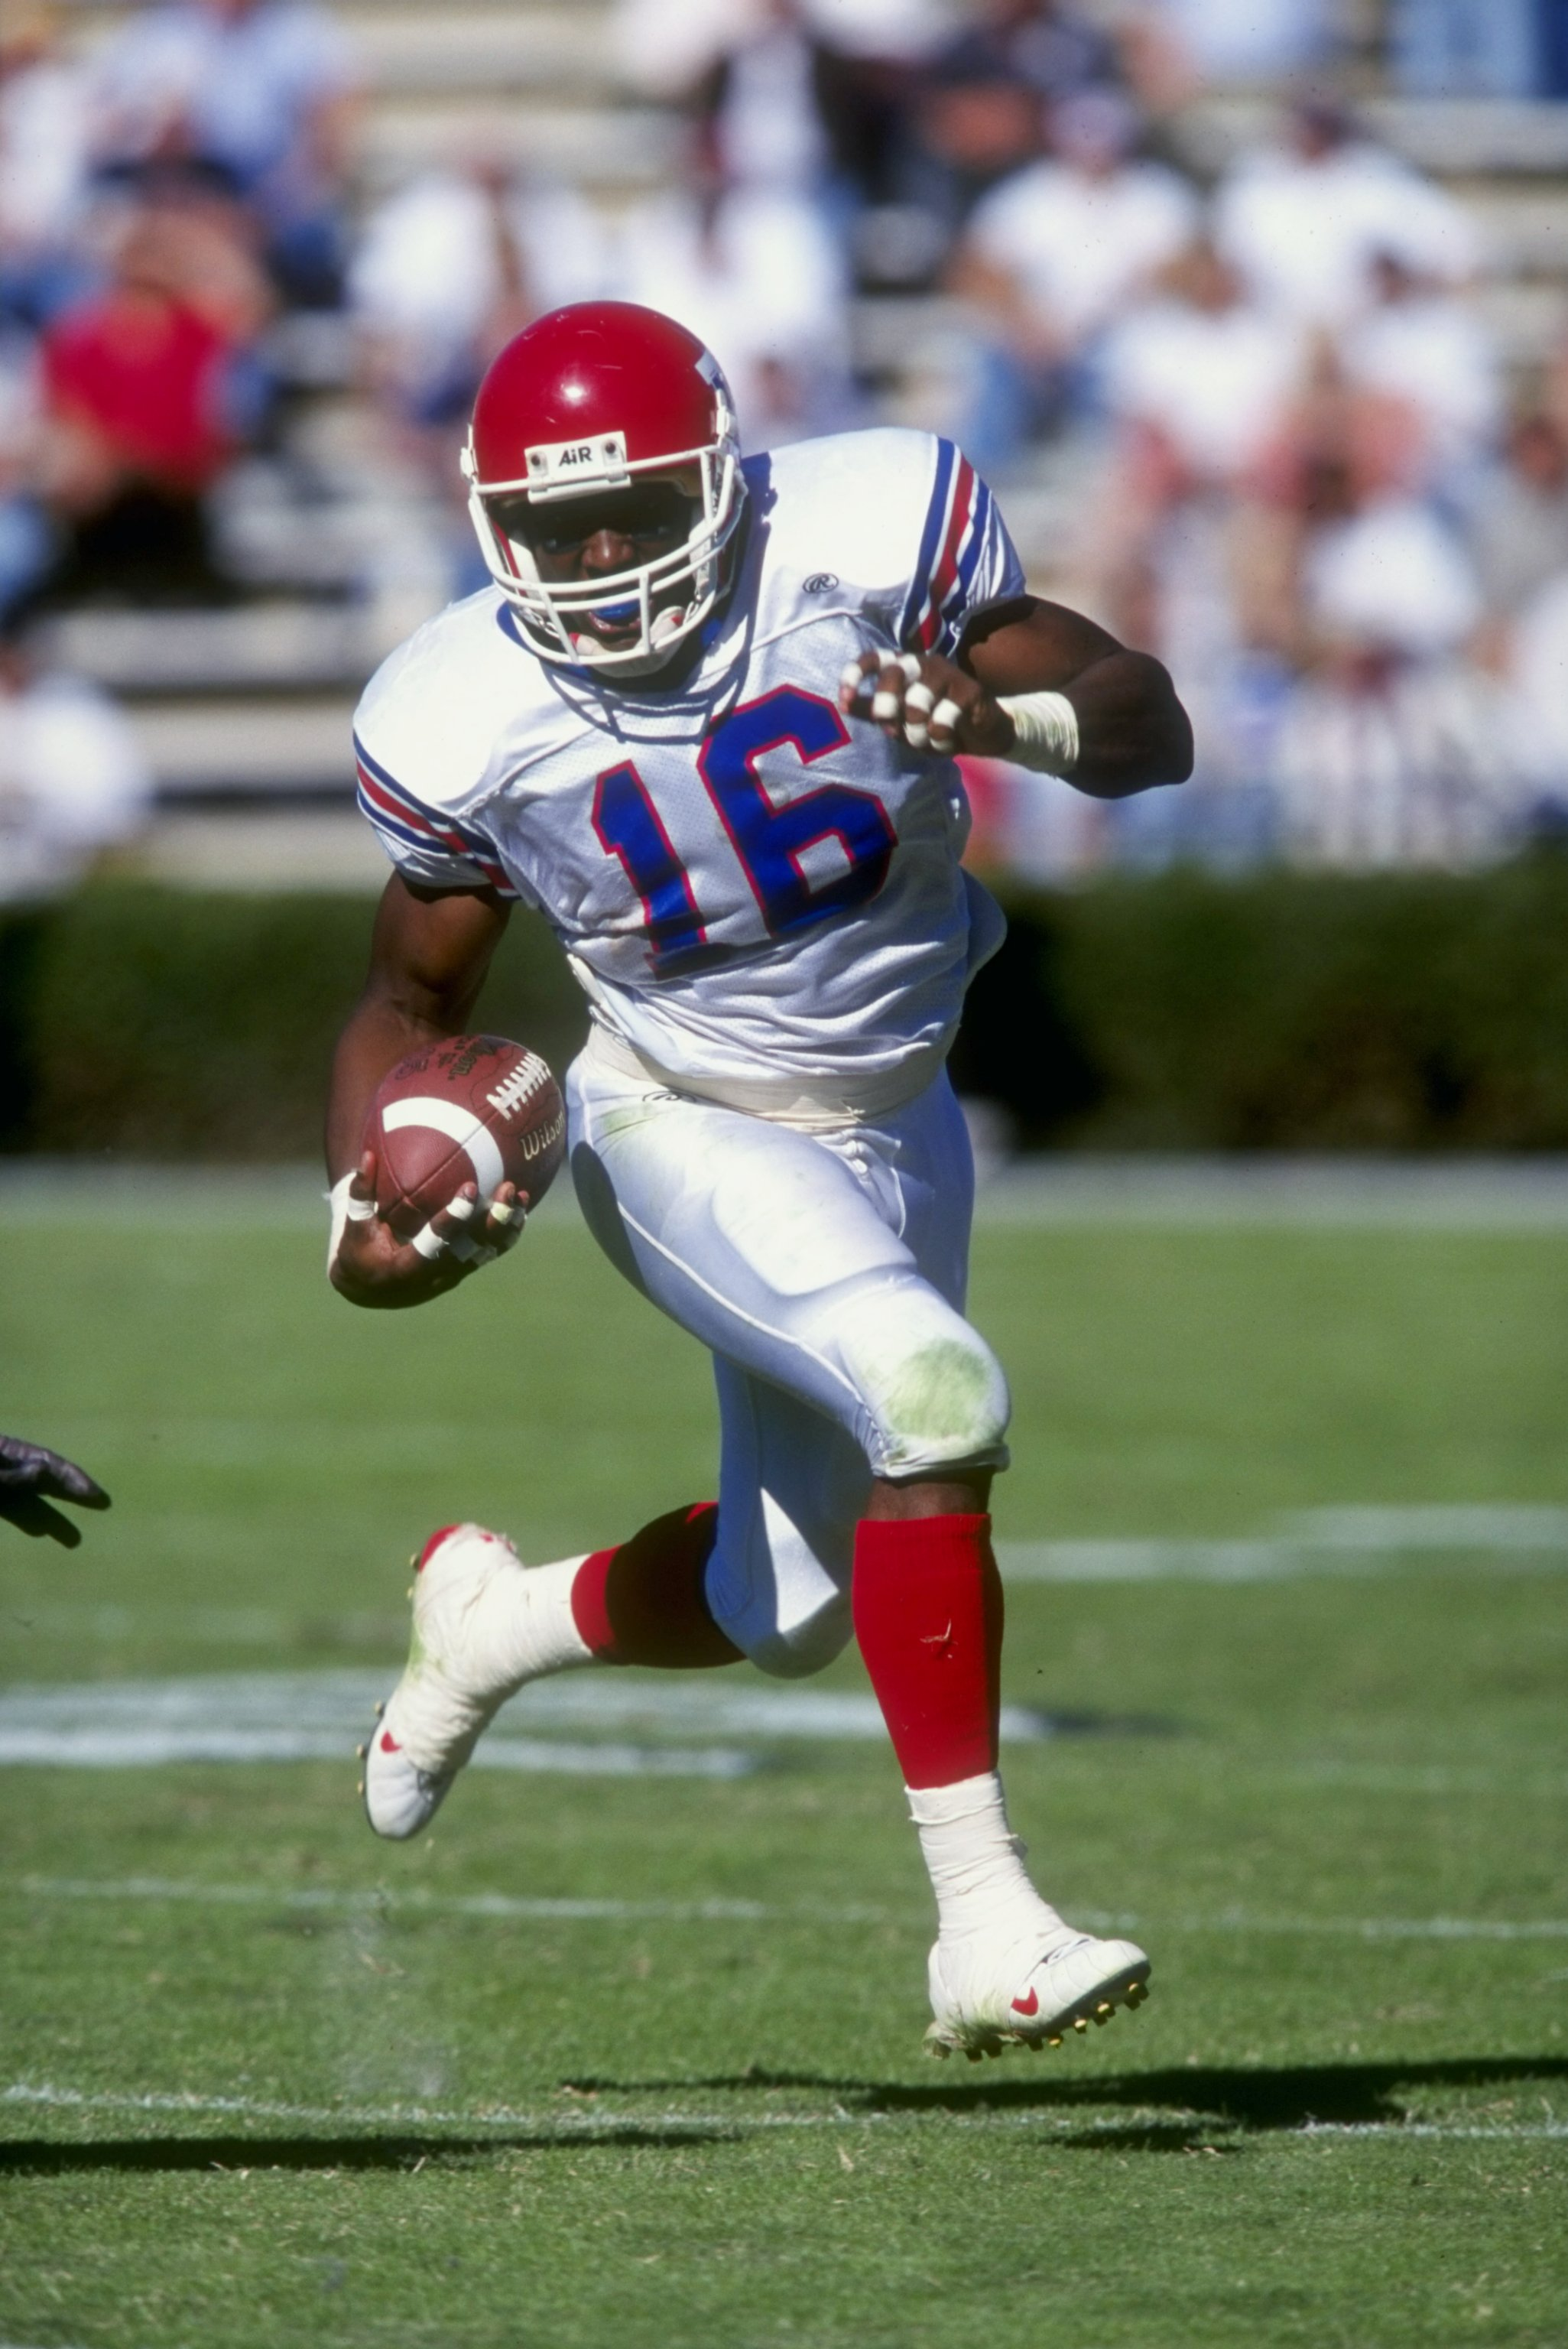 24 Oct 1998: Troy Edwards #16 of the Louisiana Tech Bulldogs grips the ball as he runs during the game against the Auburn Tigers at Jordan- Hare Stadium in Auburn, Alabama. Auburn defeated Lousiana Tech 32-17. Mandatory Credit: Tom Hauck  /Allsport